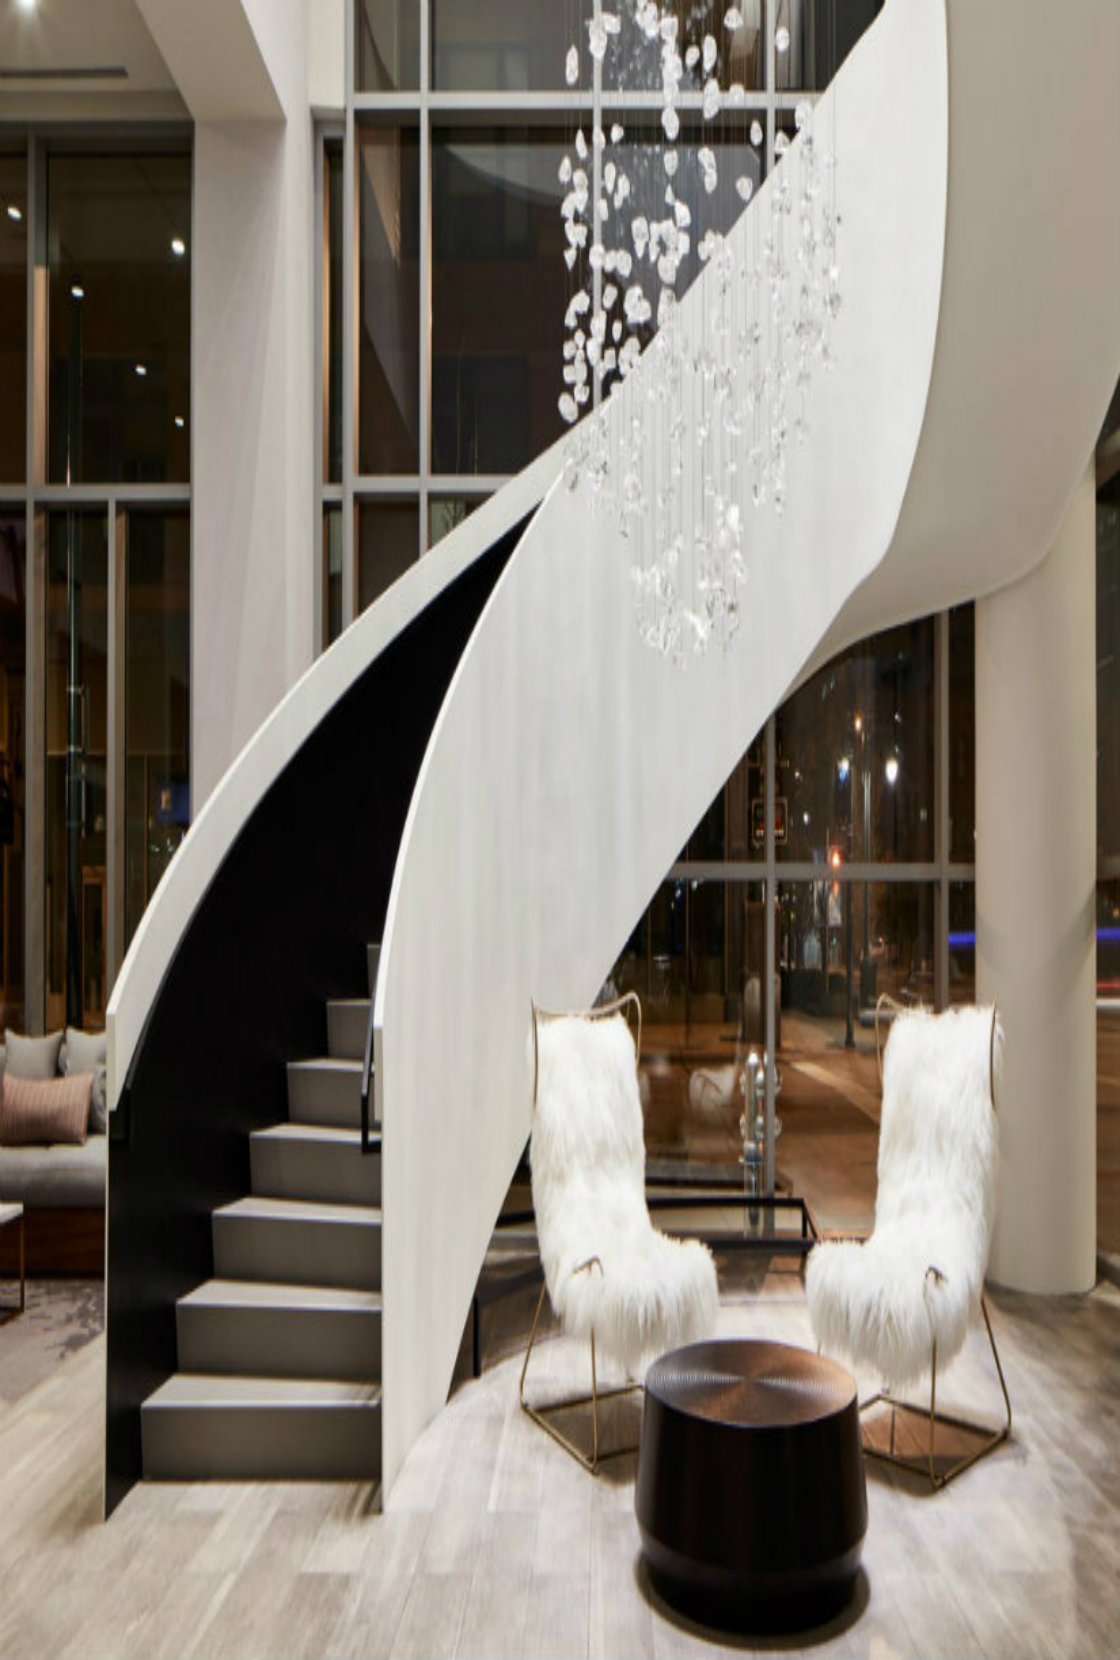 10 trendy hotel interior design by simeone deary design group inspirations and ideas